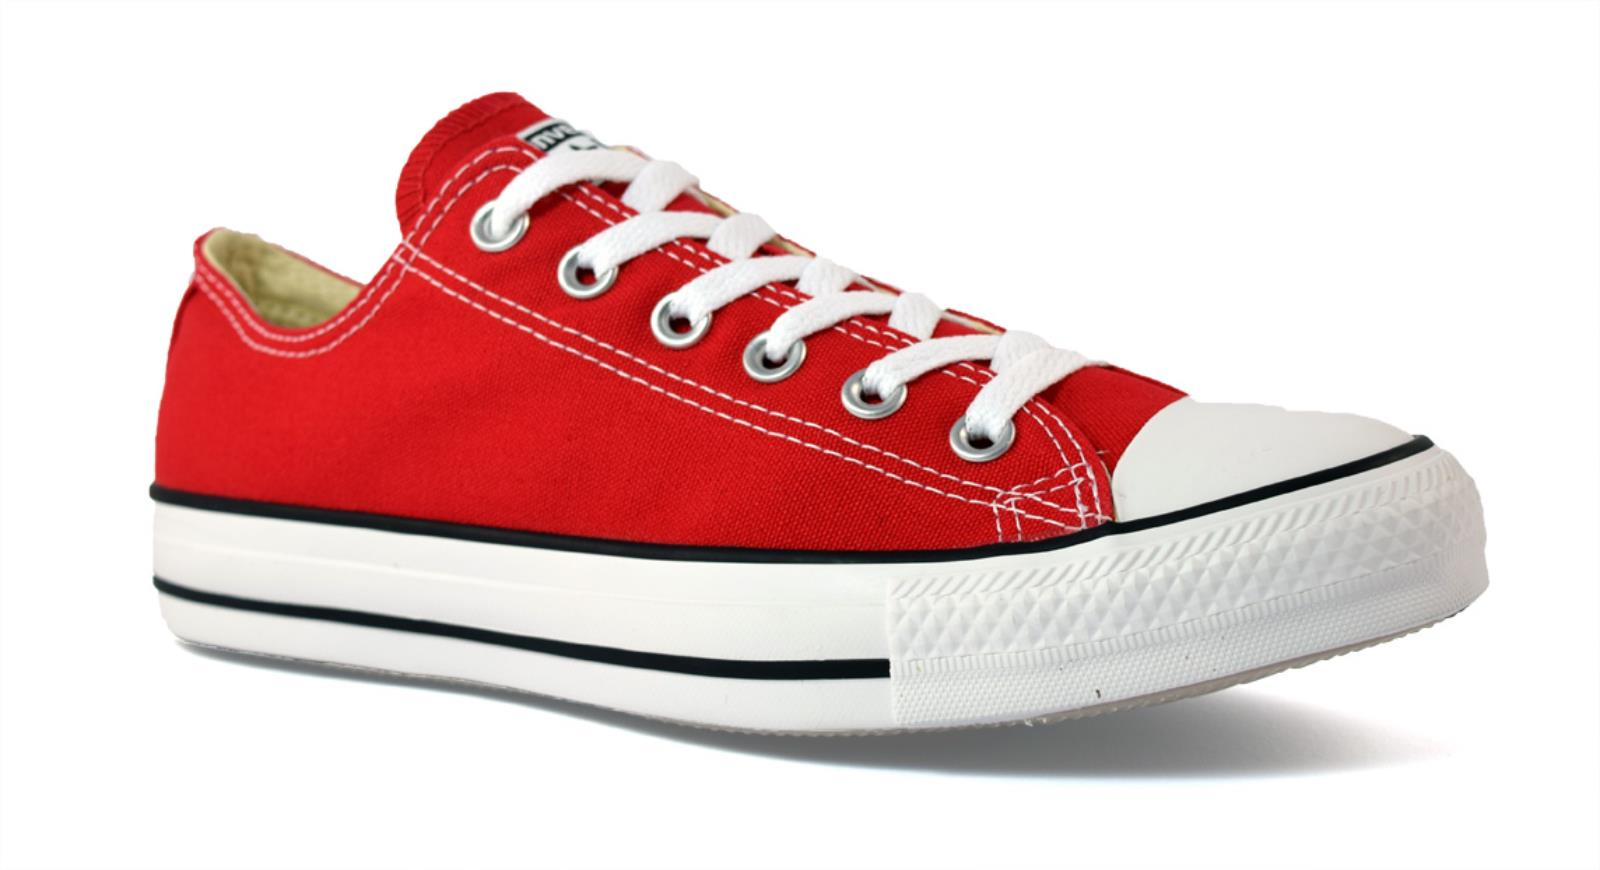 Converse Chuck Toile Taylor All Rouge Star Unisexe Chaussures M9696c OHR6Orqx